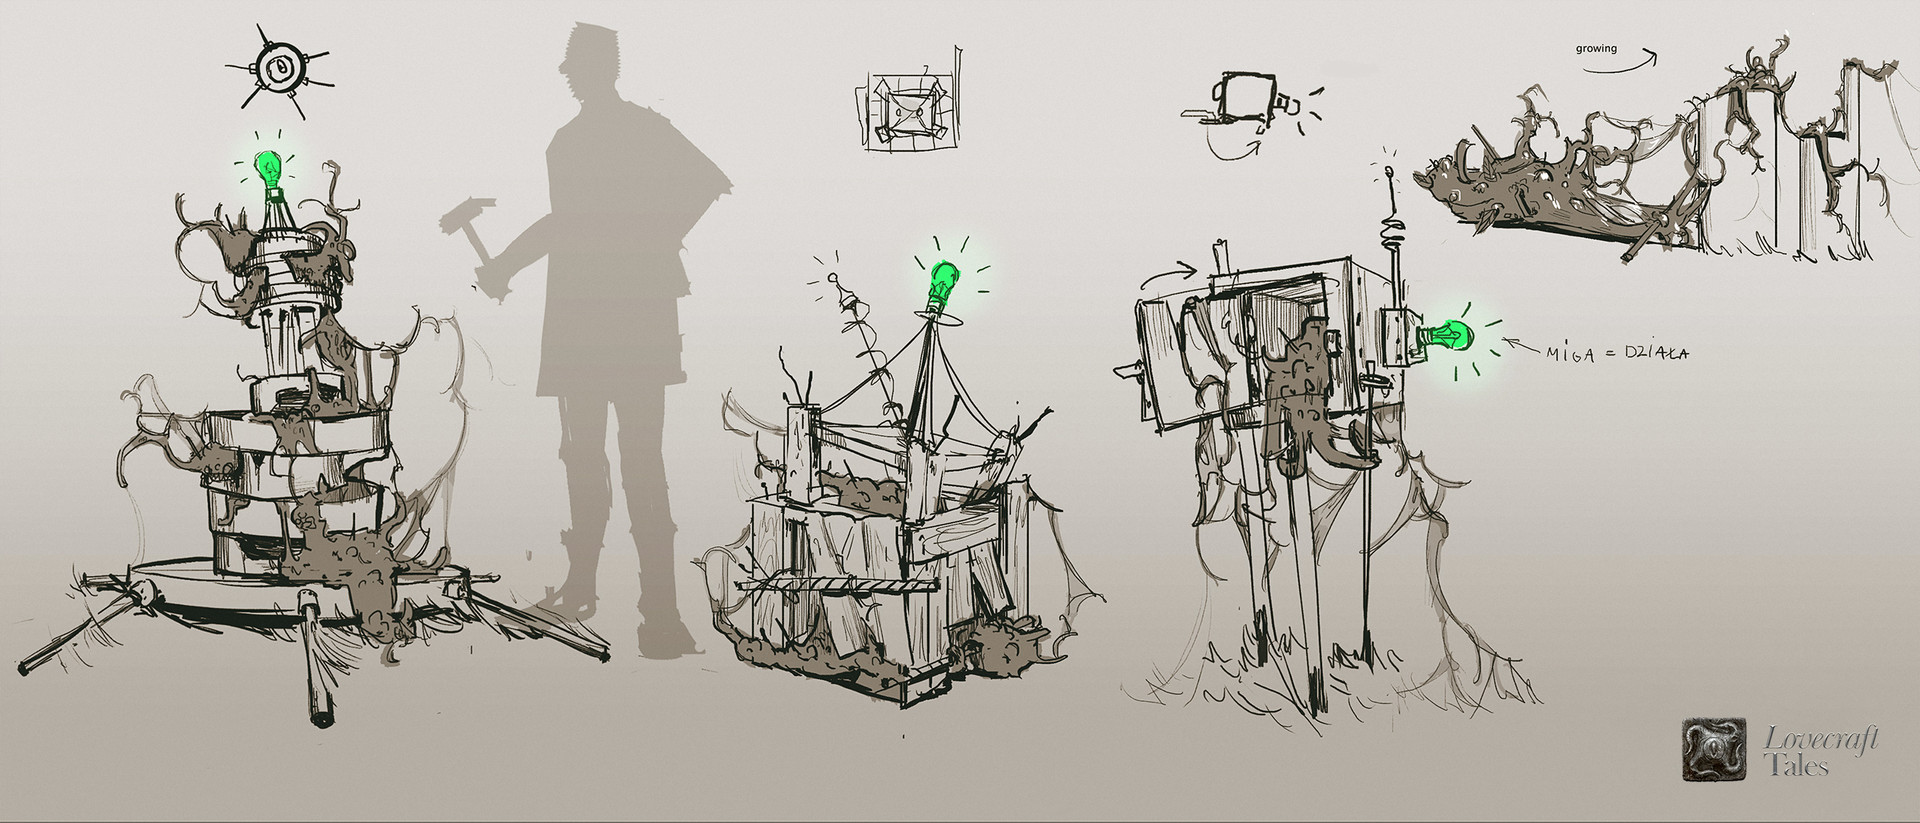 Lovecraft Tales Concept arts